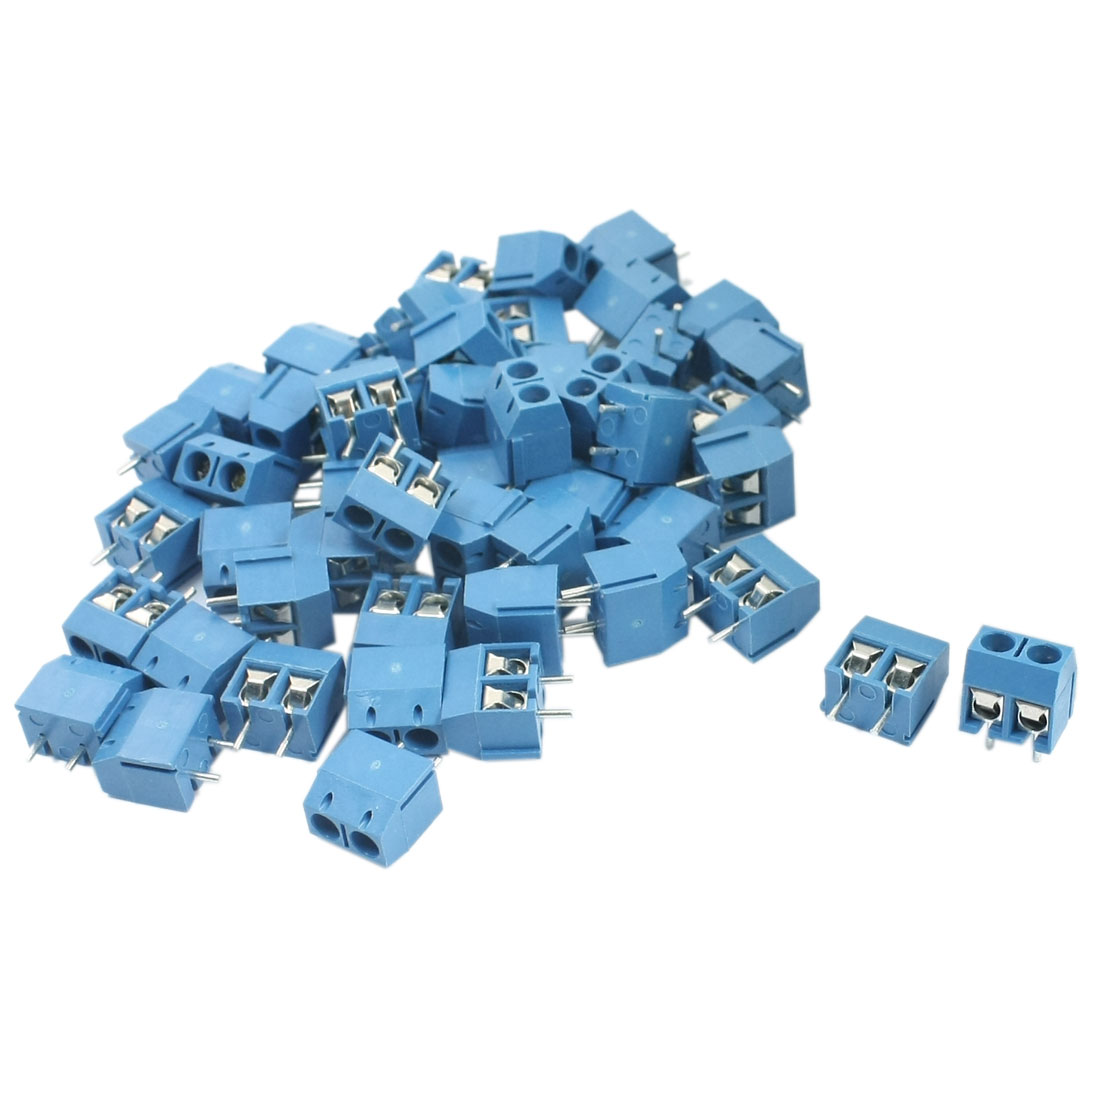 300V 12A 14-22AWG 5mm Pitch 2-Position Pluggable Type PCB Mounting Blue Plastic Screw Terminal Block Connector 50 Pcs